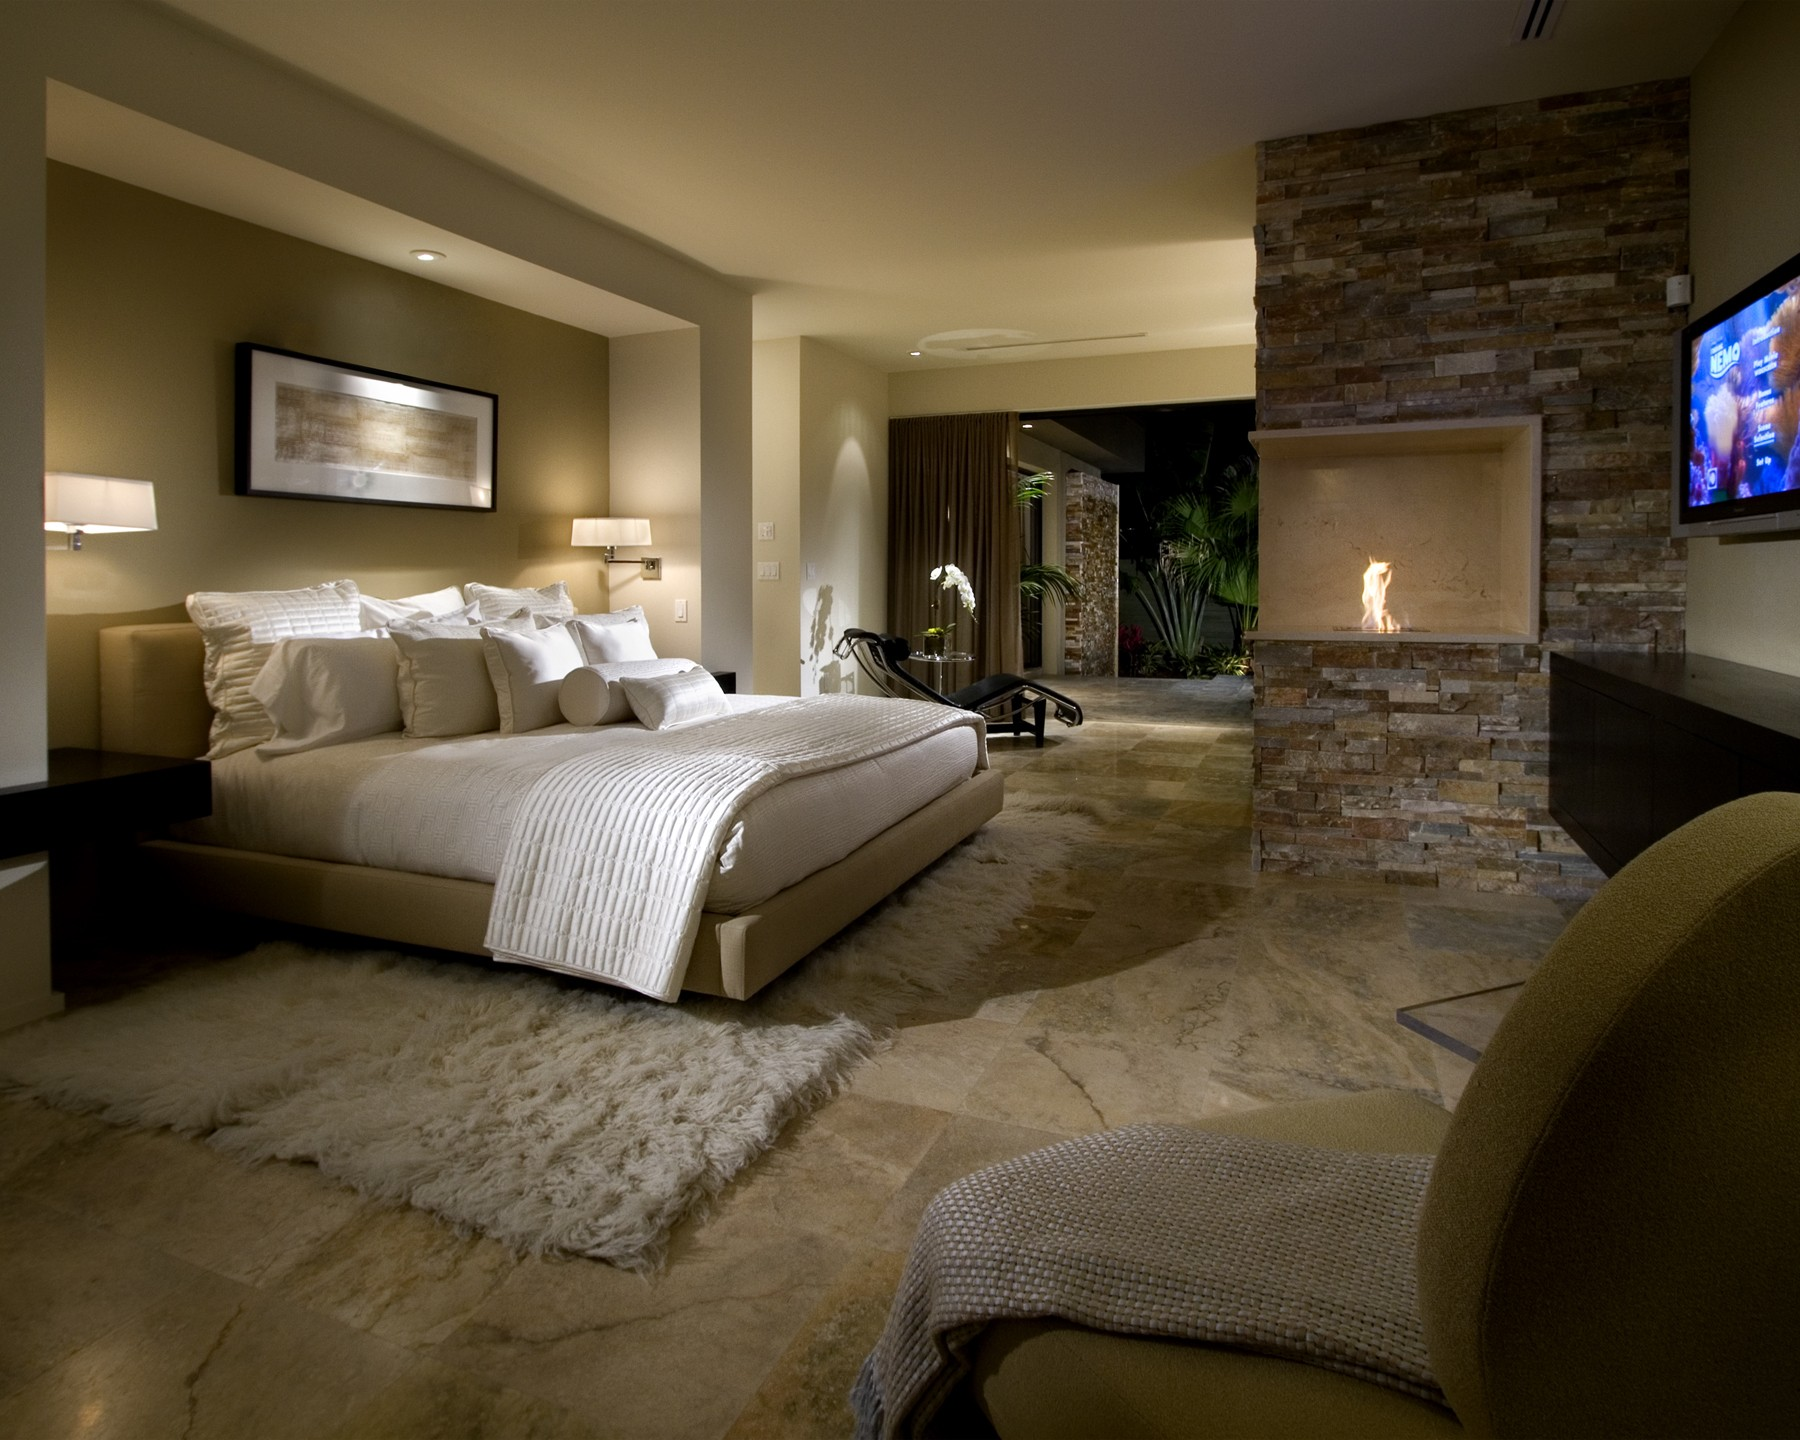 6 bedrooms with fireplaces we would love to wake up to huffpost. Black Bedroom Furniture Sets. Home Design Ideas